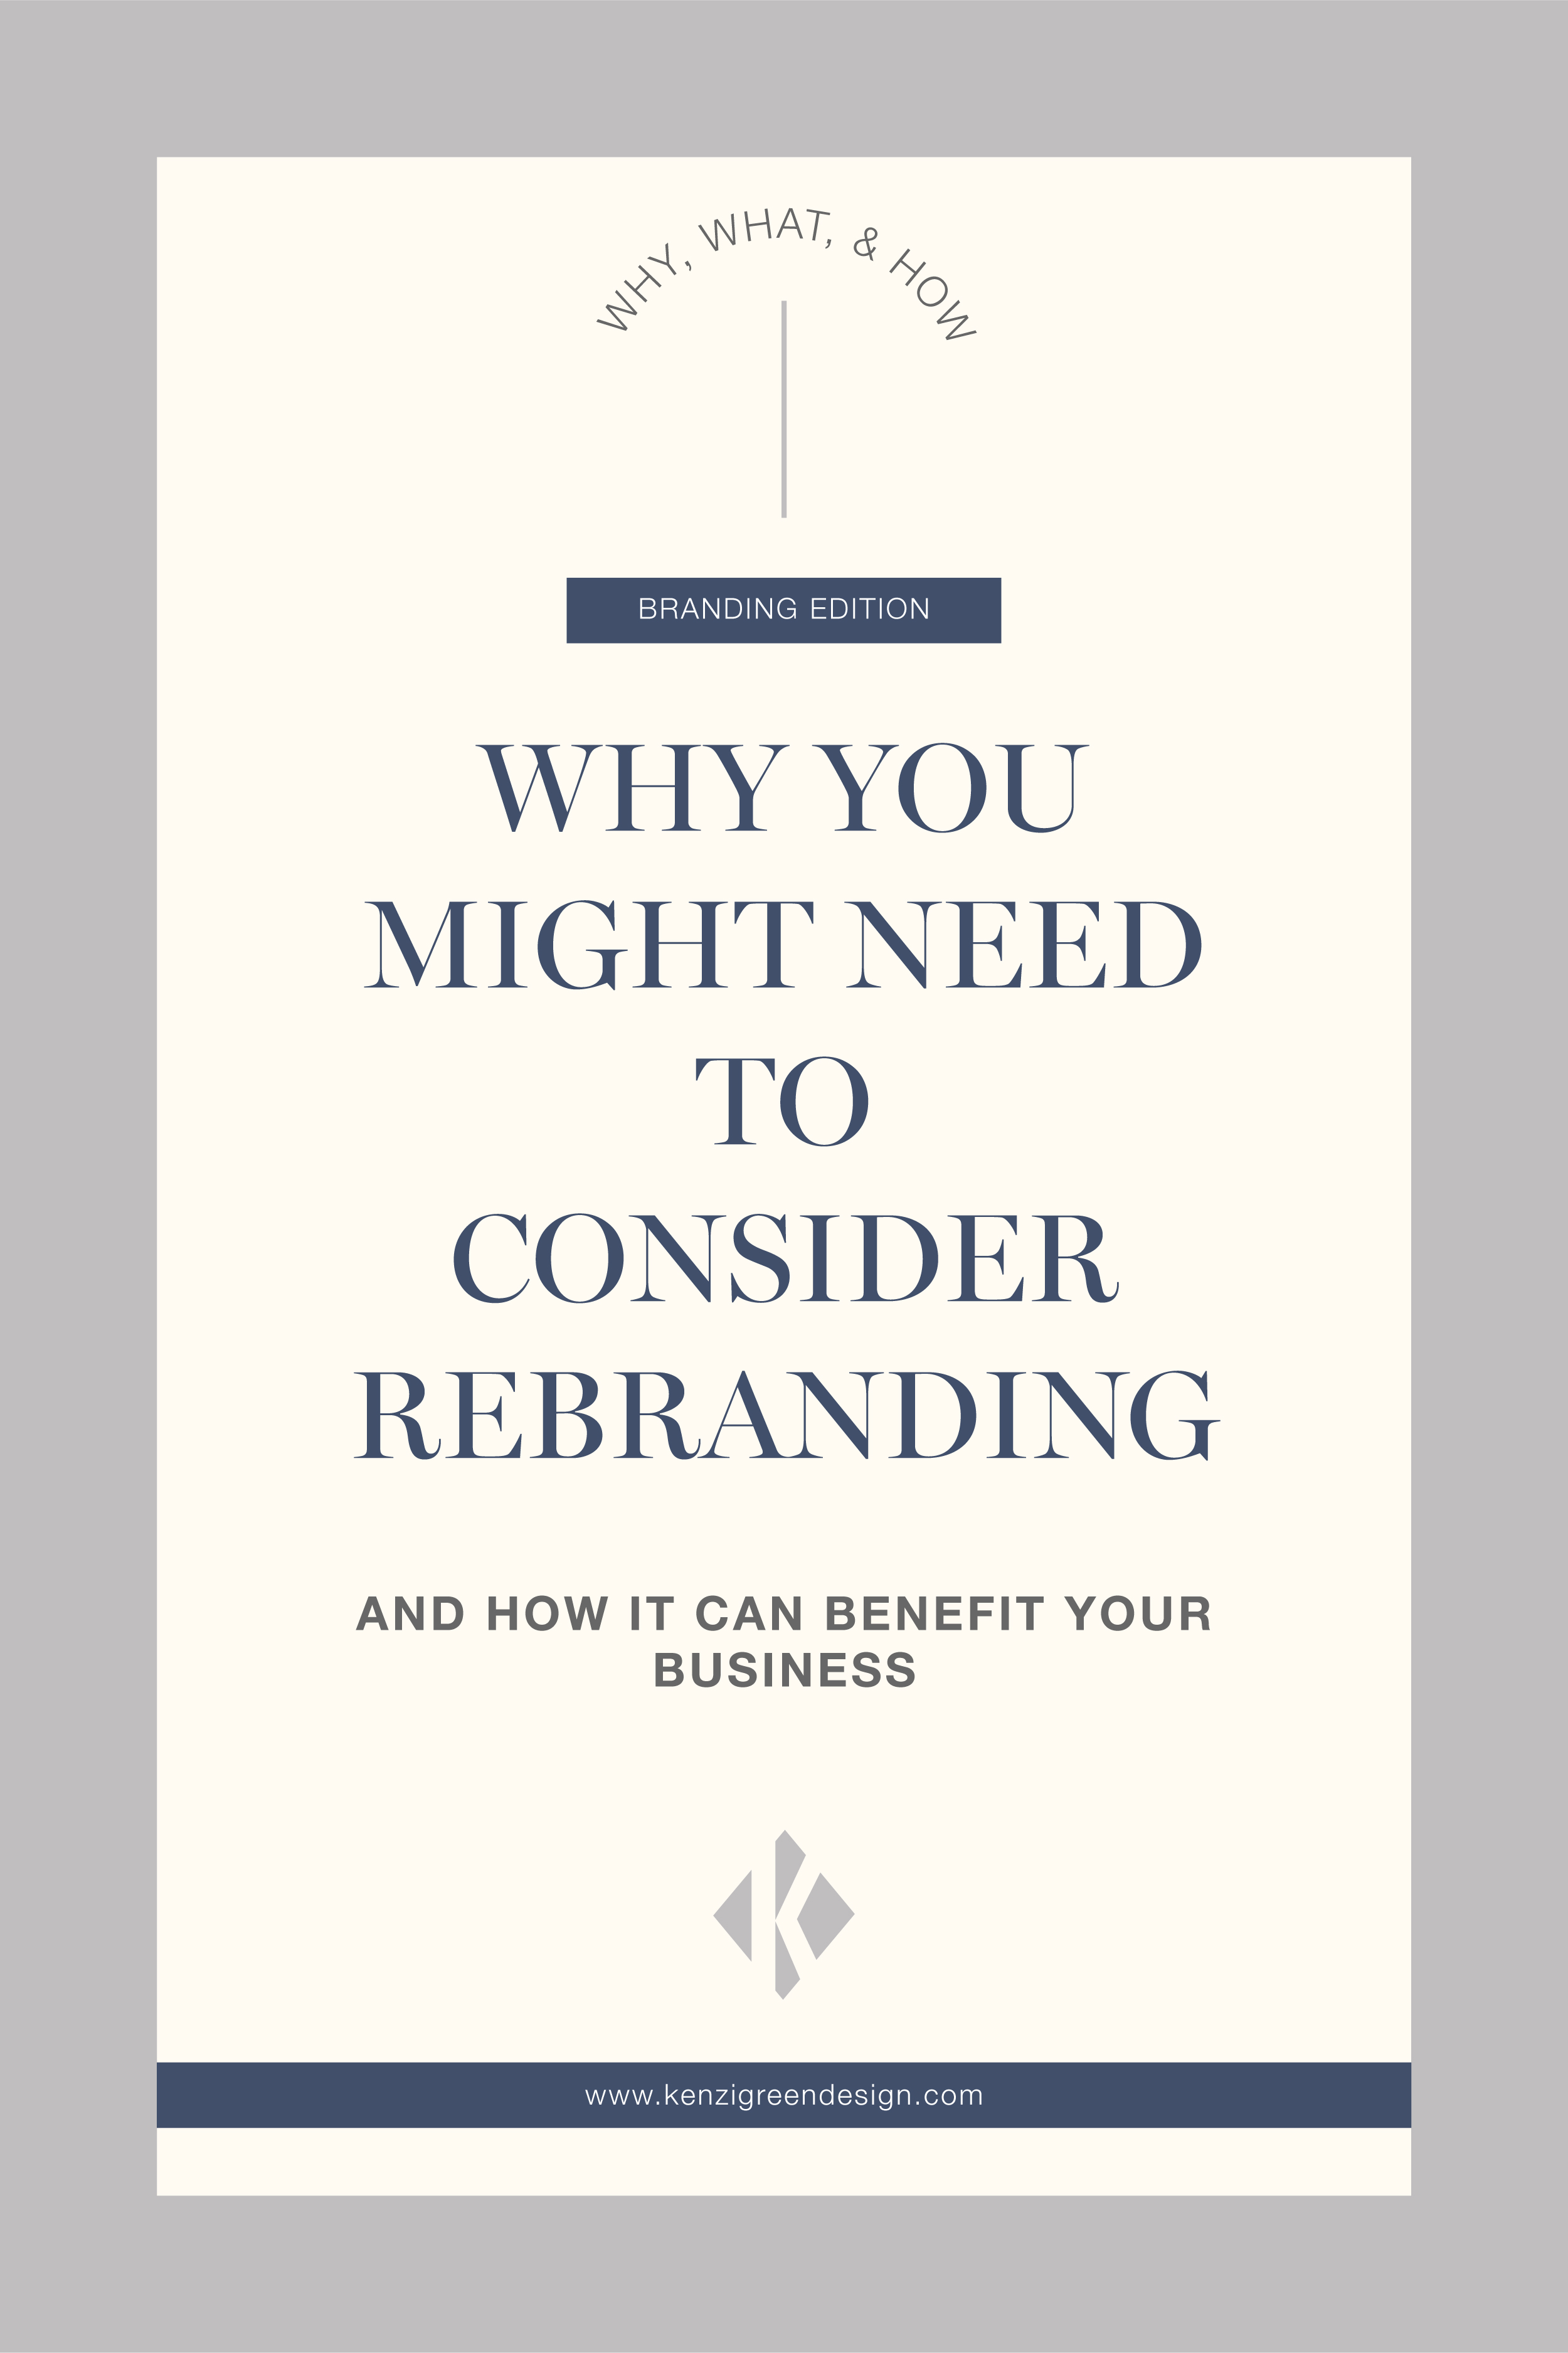 Why You Might Need To Consider Rebranding